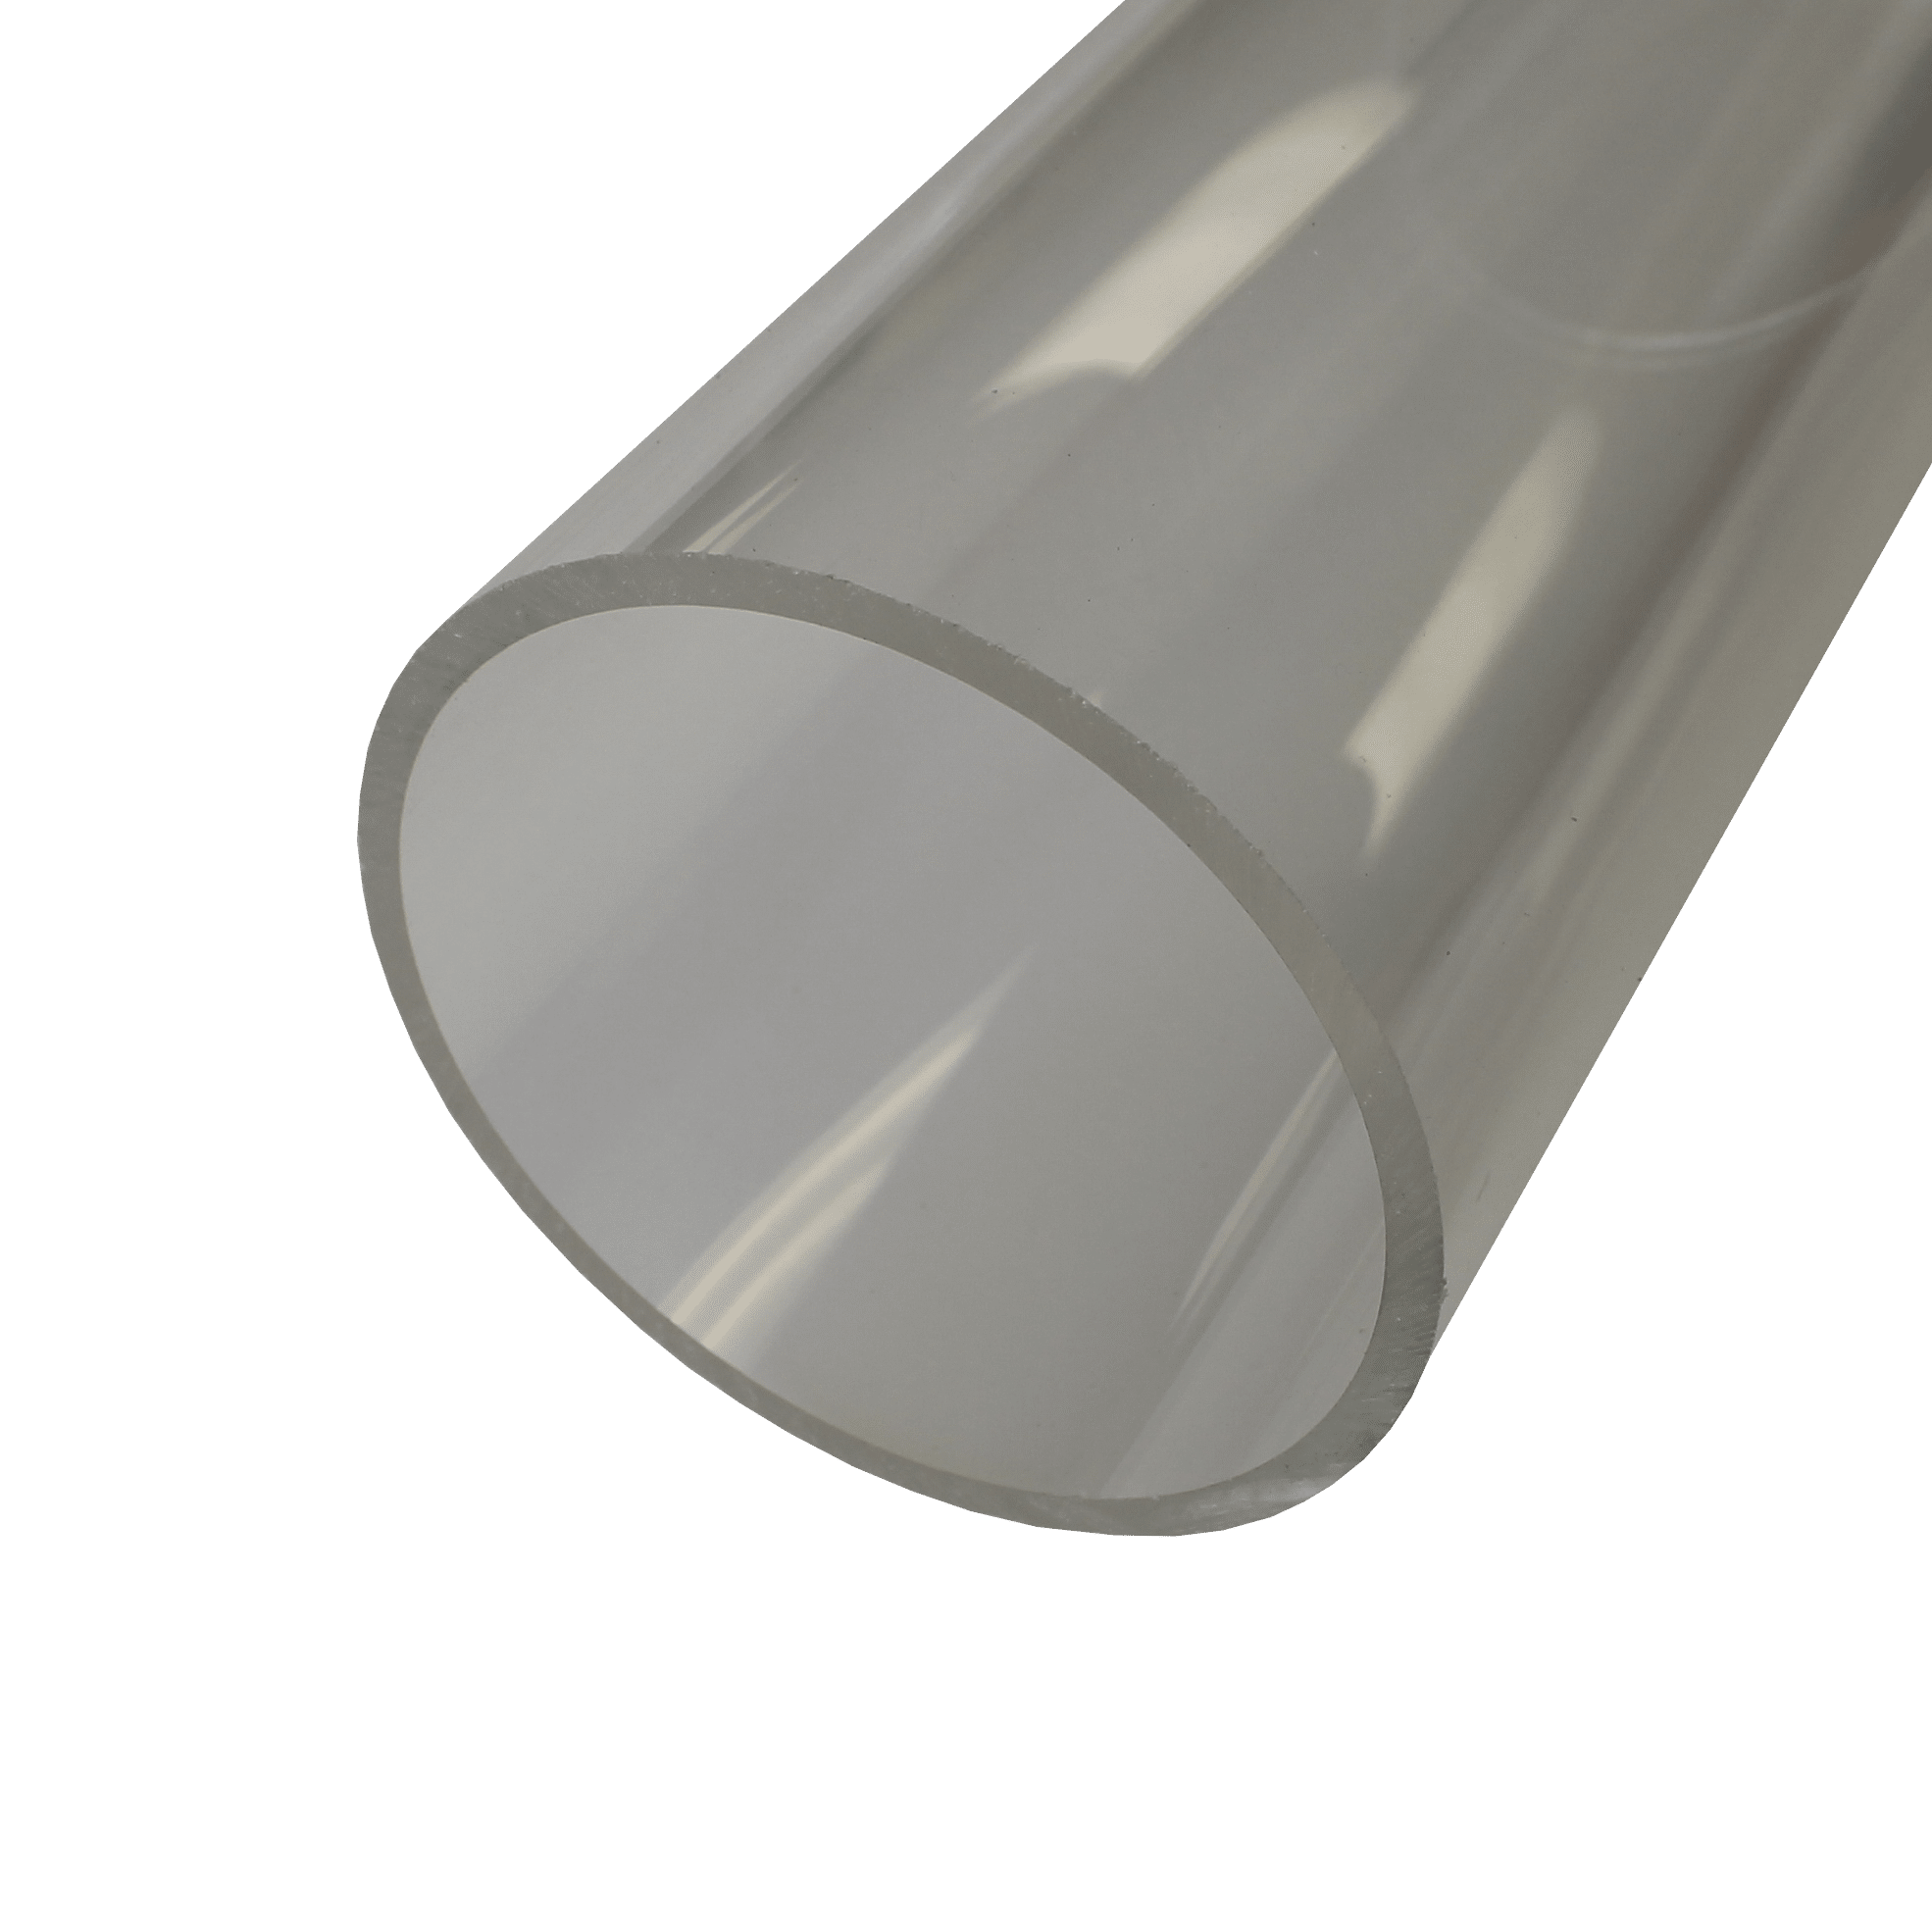 acrylic pmma tube lep engineering plastics